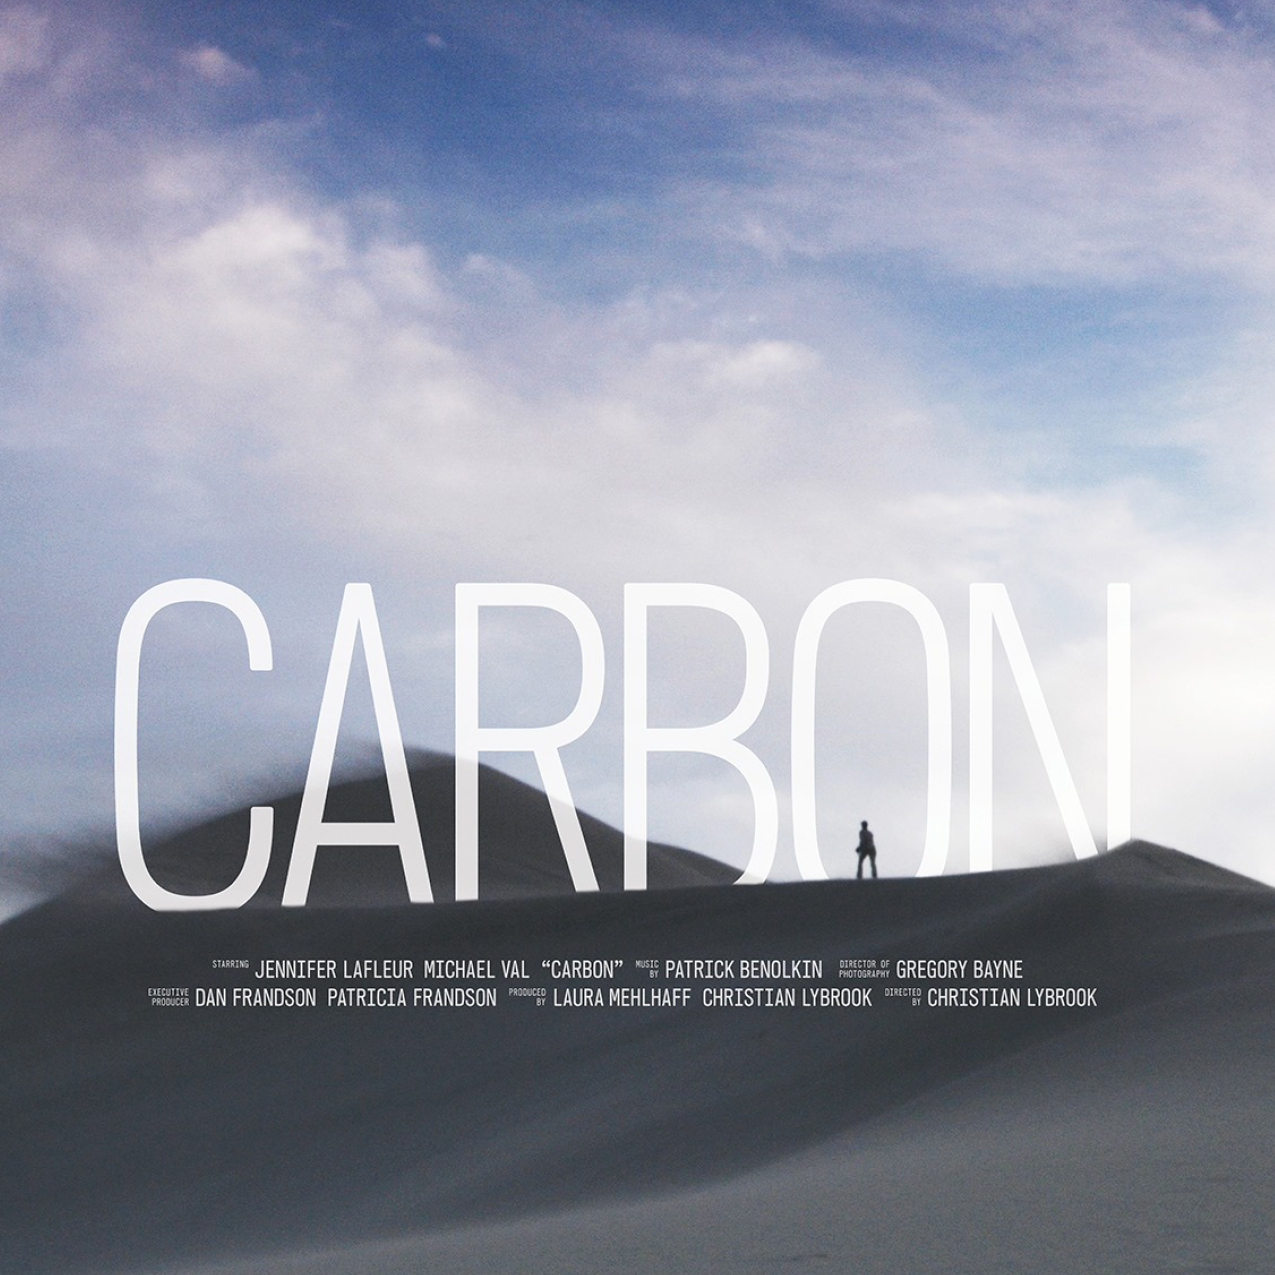 CARBON - A sci-fi western short film.A sheep rancher's carefully constructed life begins to unravel when she discovers strange happenings on her ranch.SELECT ACCOLADES2015 BEST SHORT SCREENPLAY | SUN VALLEY FILM FESTIVAL